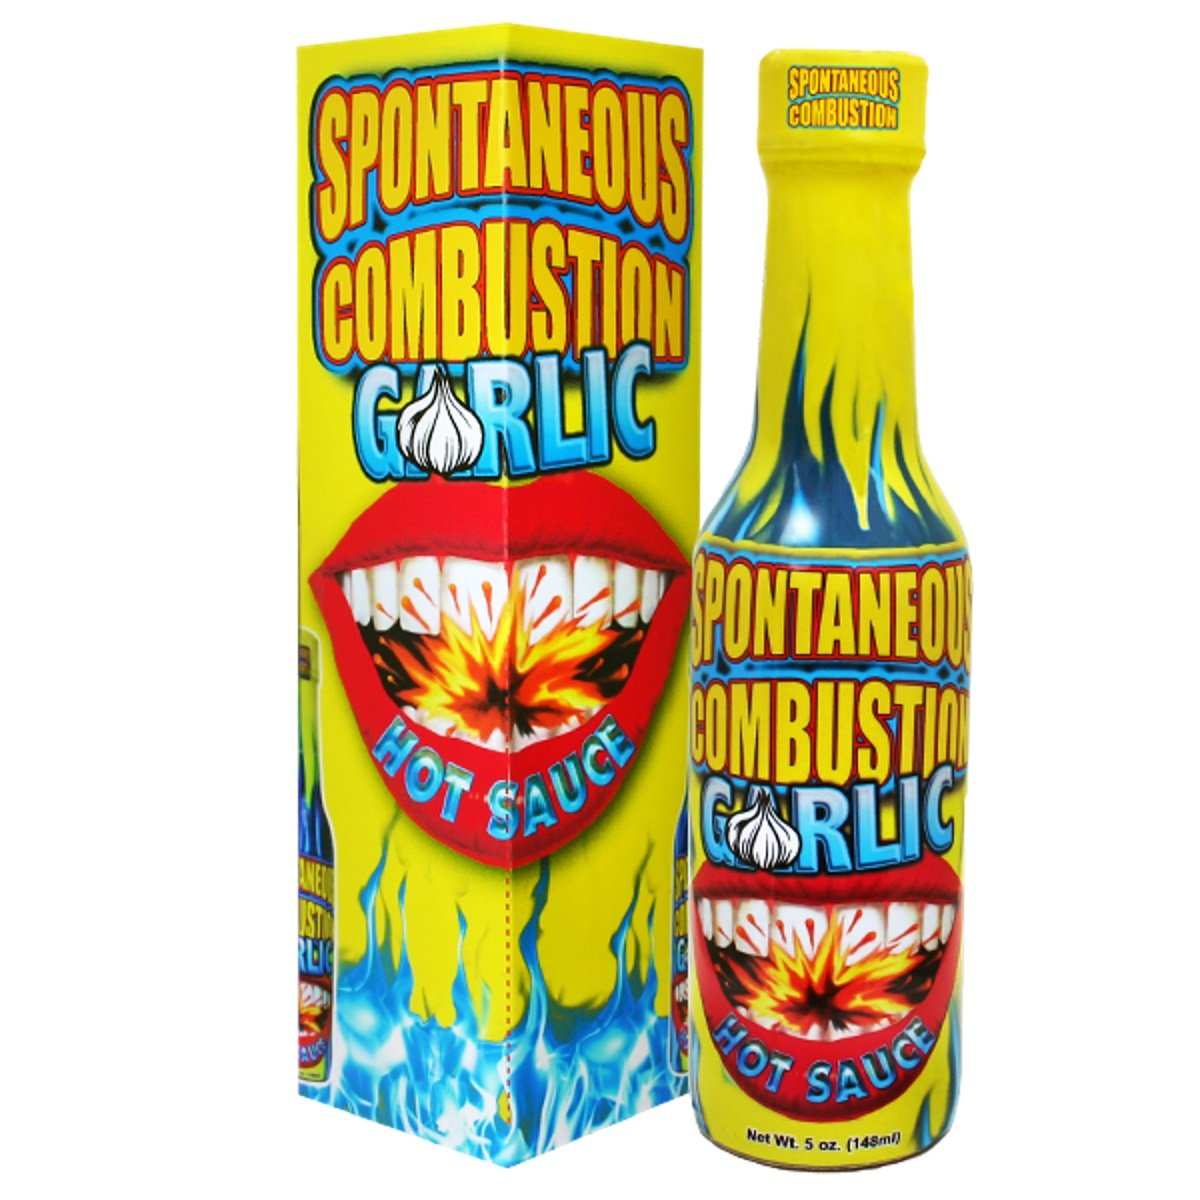 Spontaneous Combustion Garlic Habanero Hot Sauce